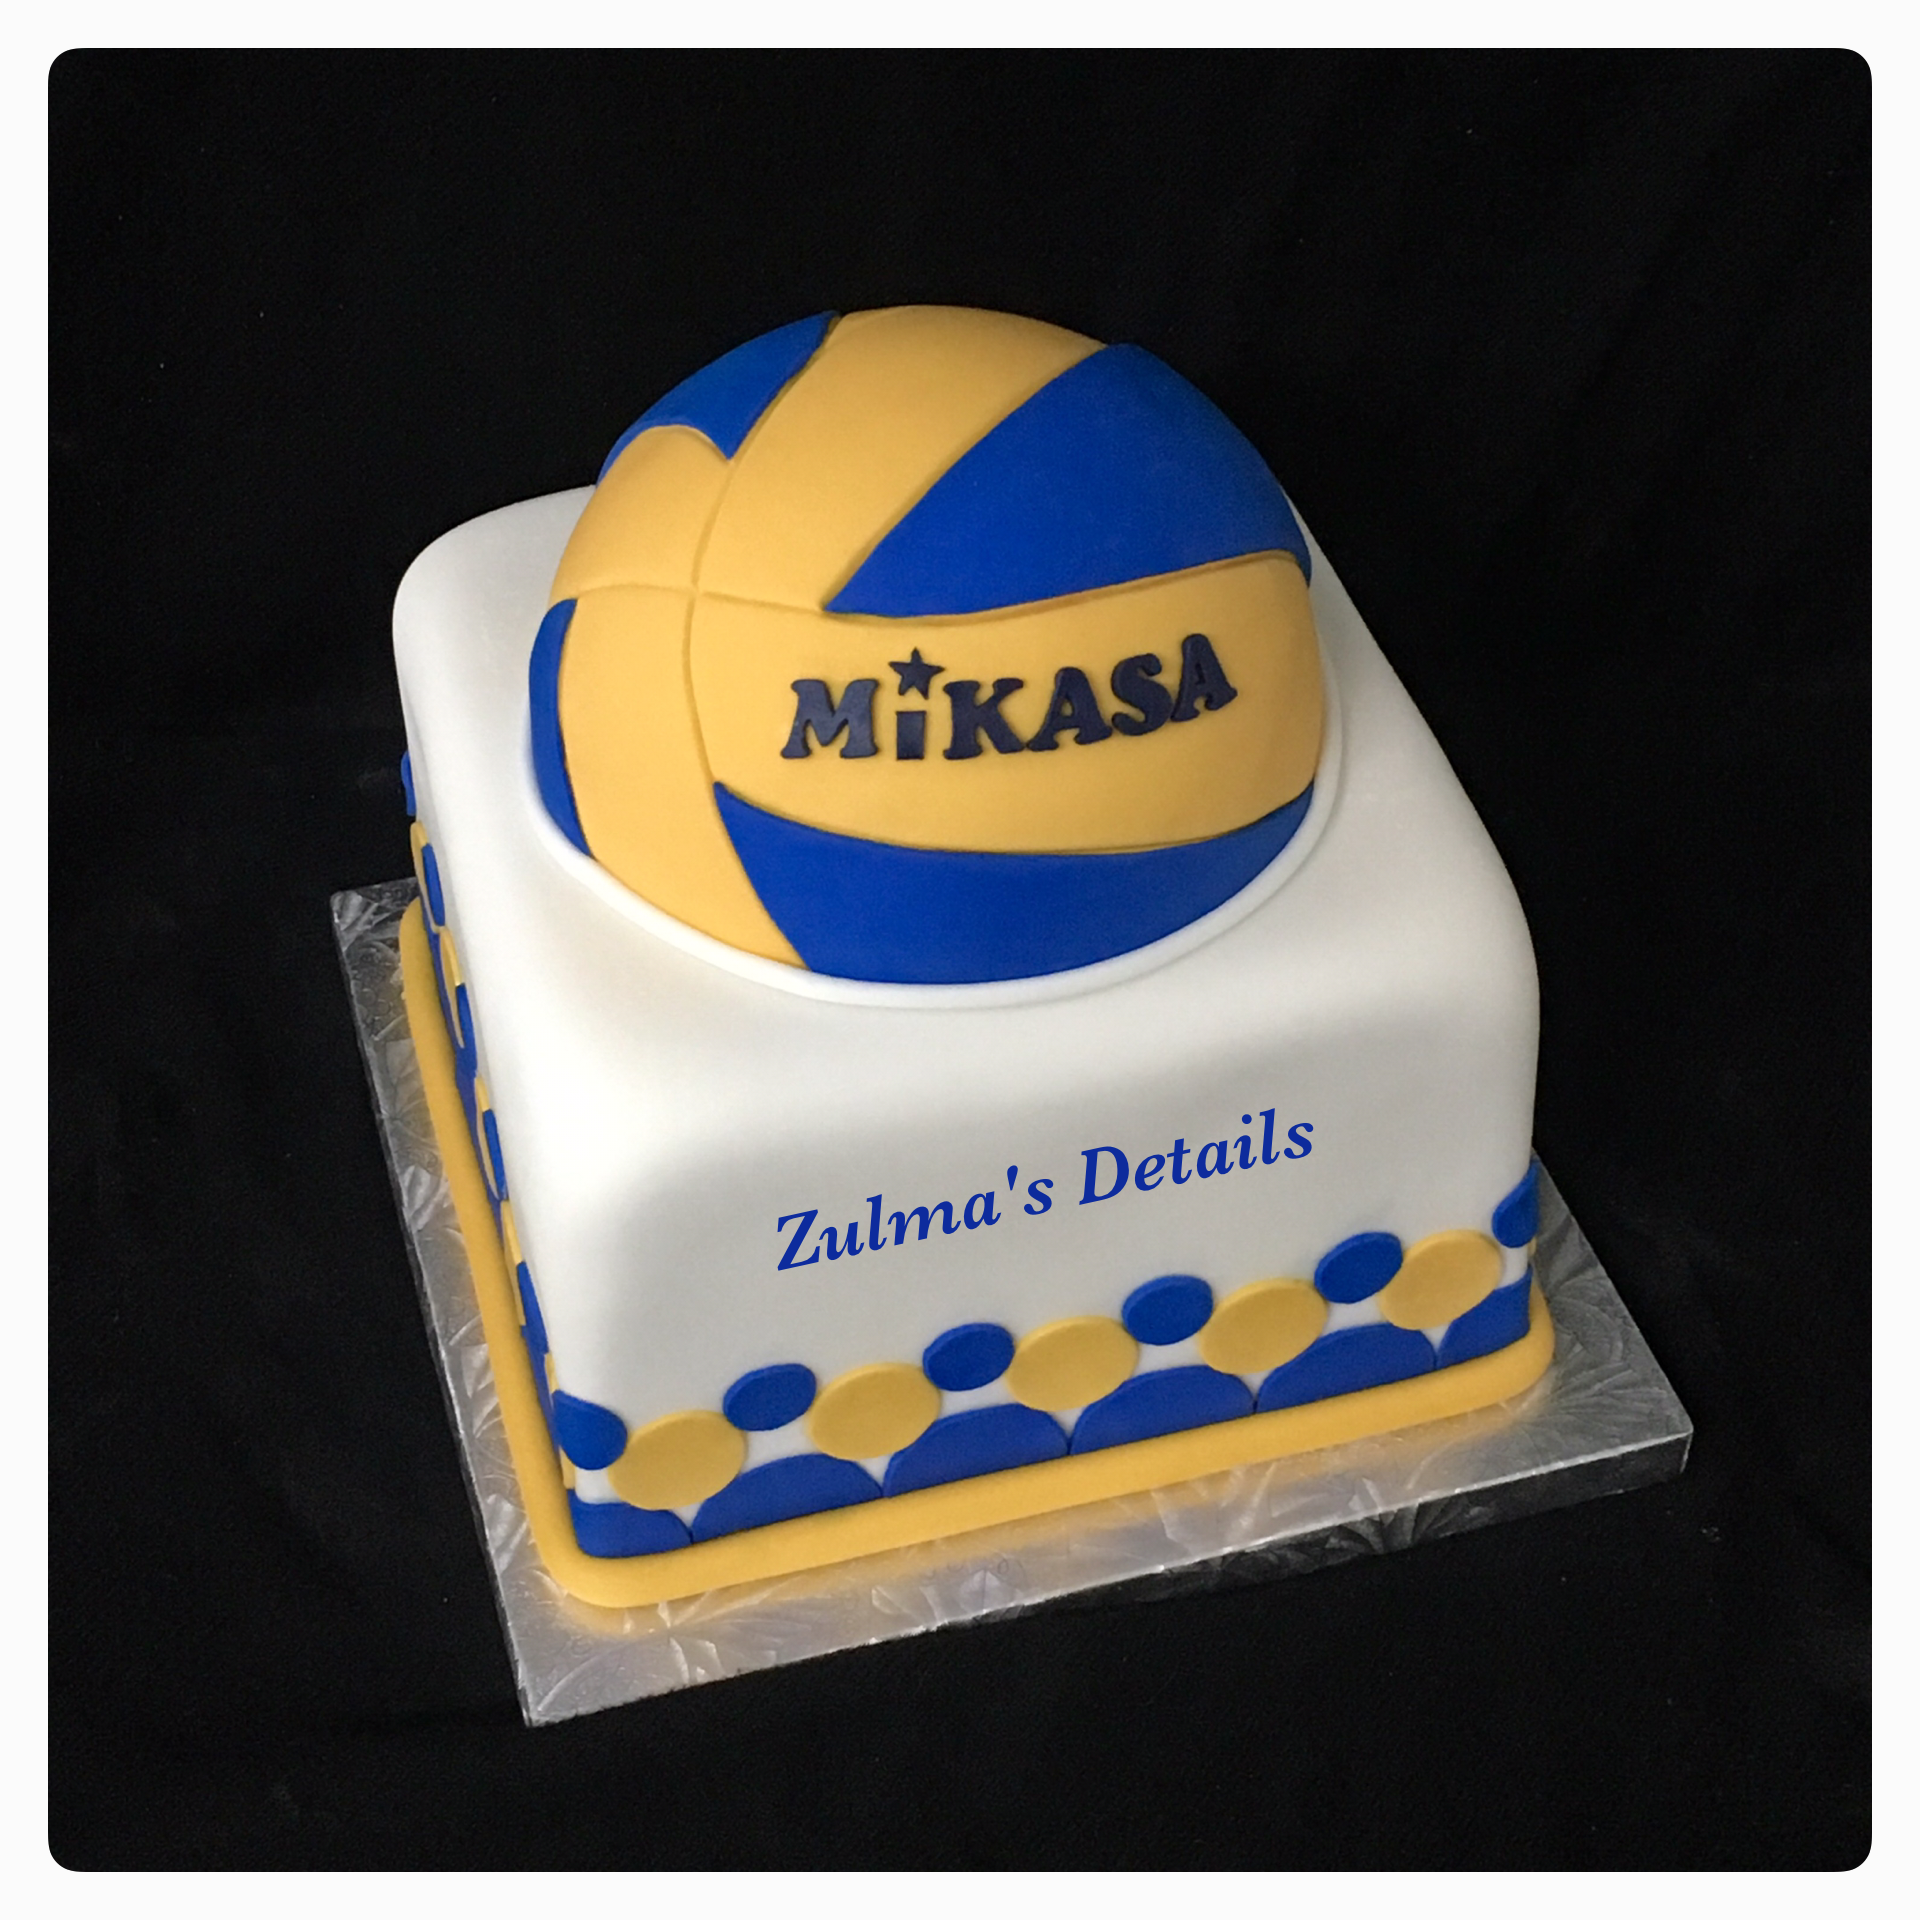 Mikasa Volleyball Cake Volleyball Cakes Oreo Cake Custom Cakes